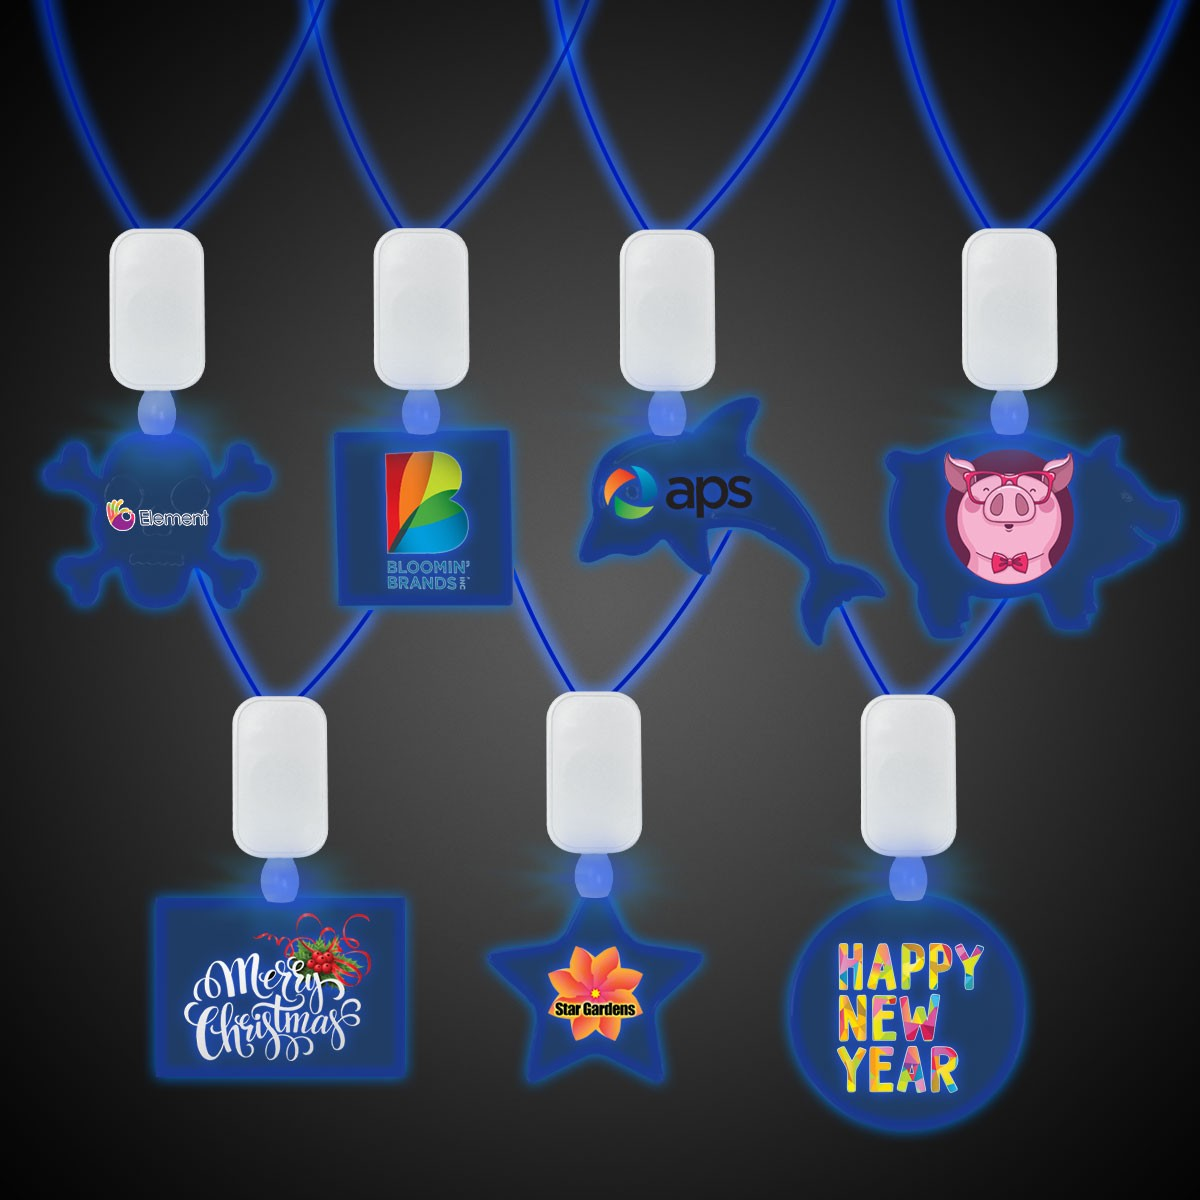 Clear Plastic Necklace with Plastic Medallion and Blue LEDS